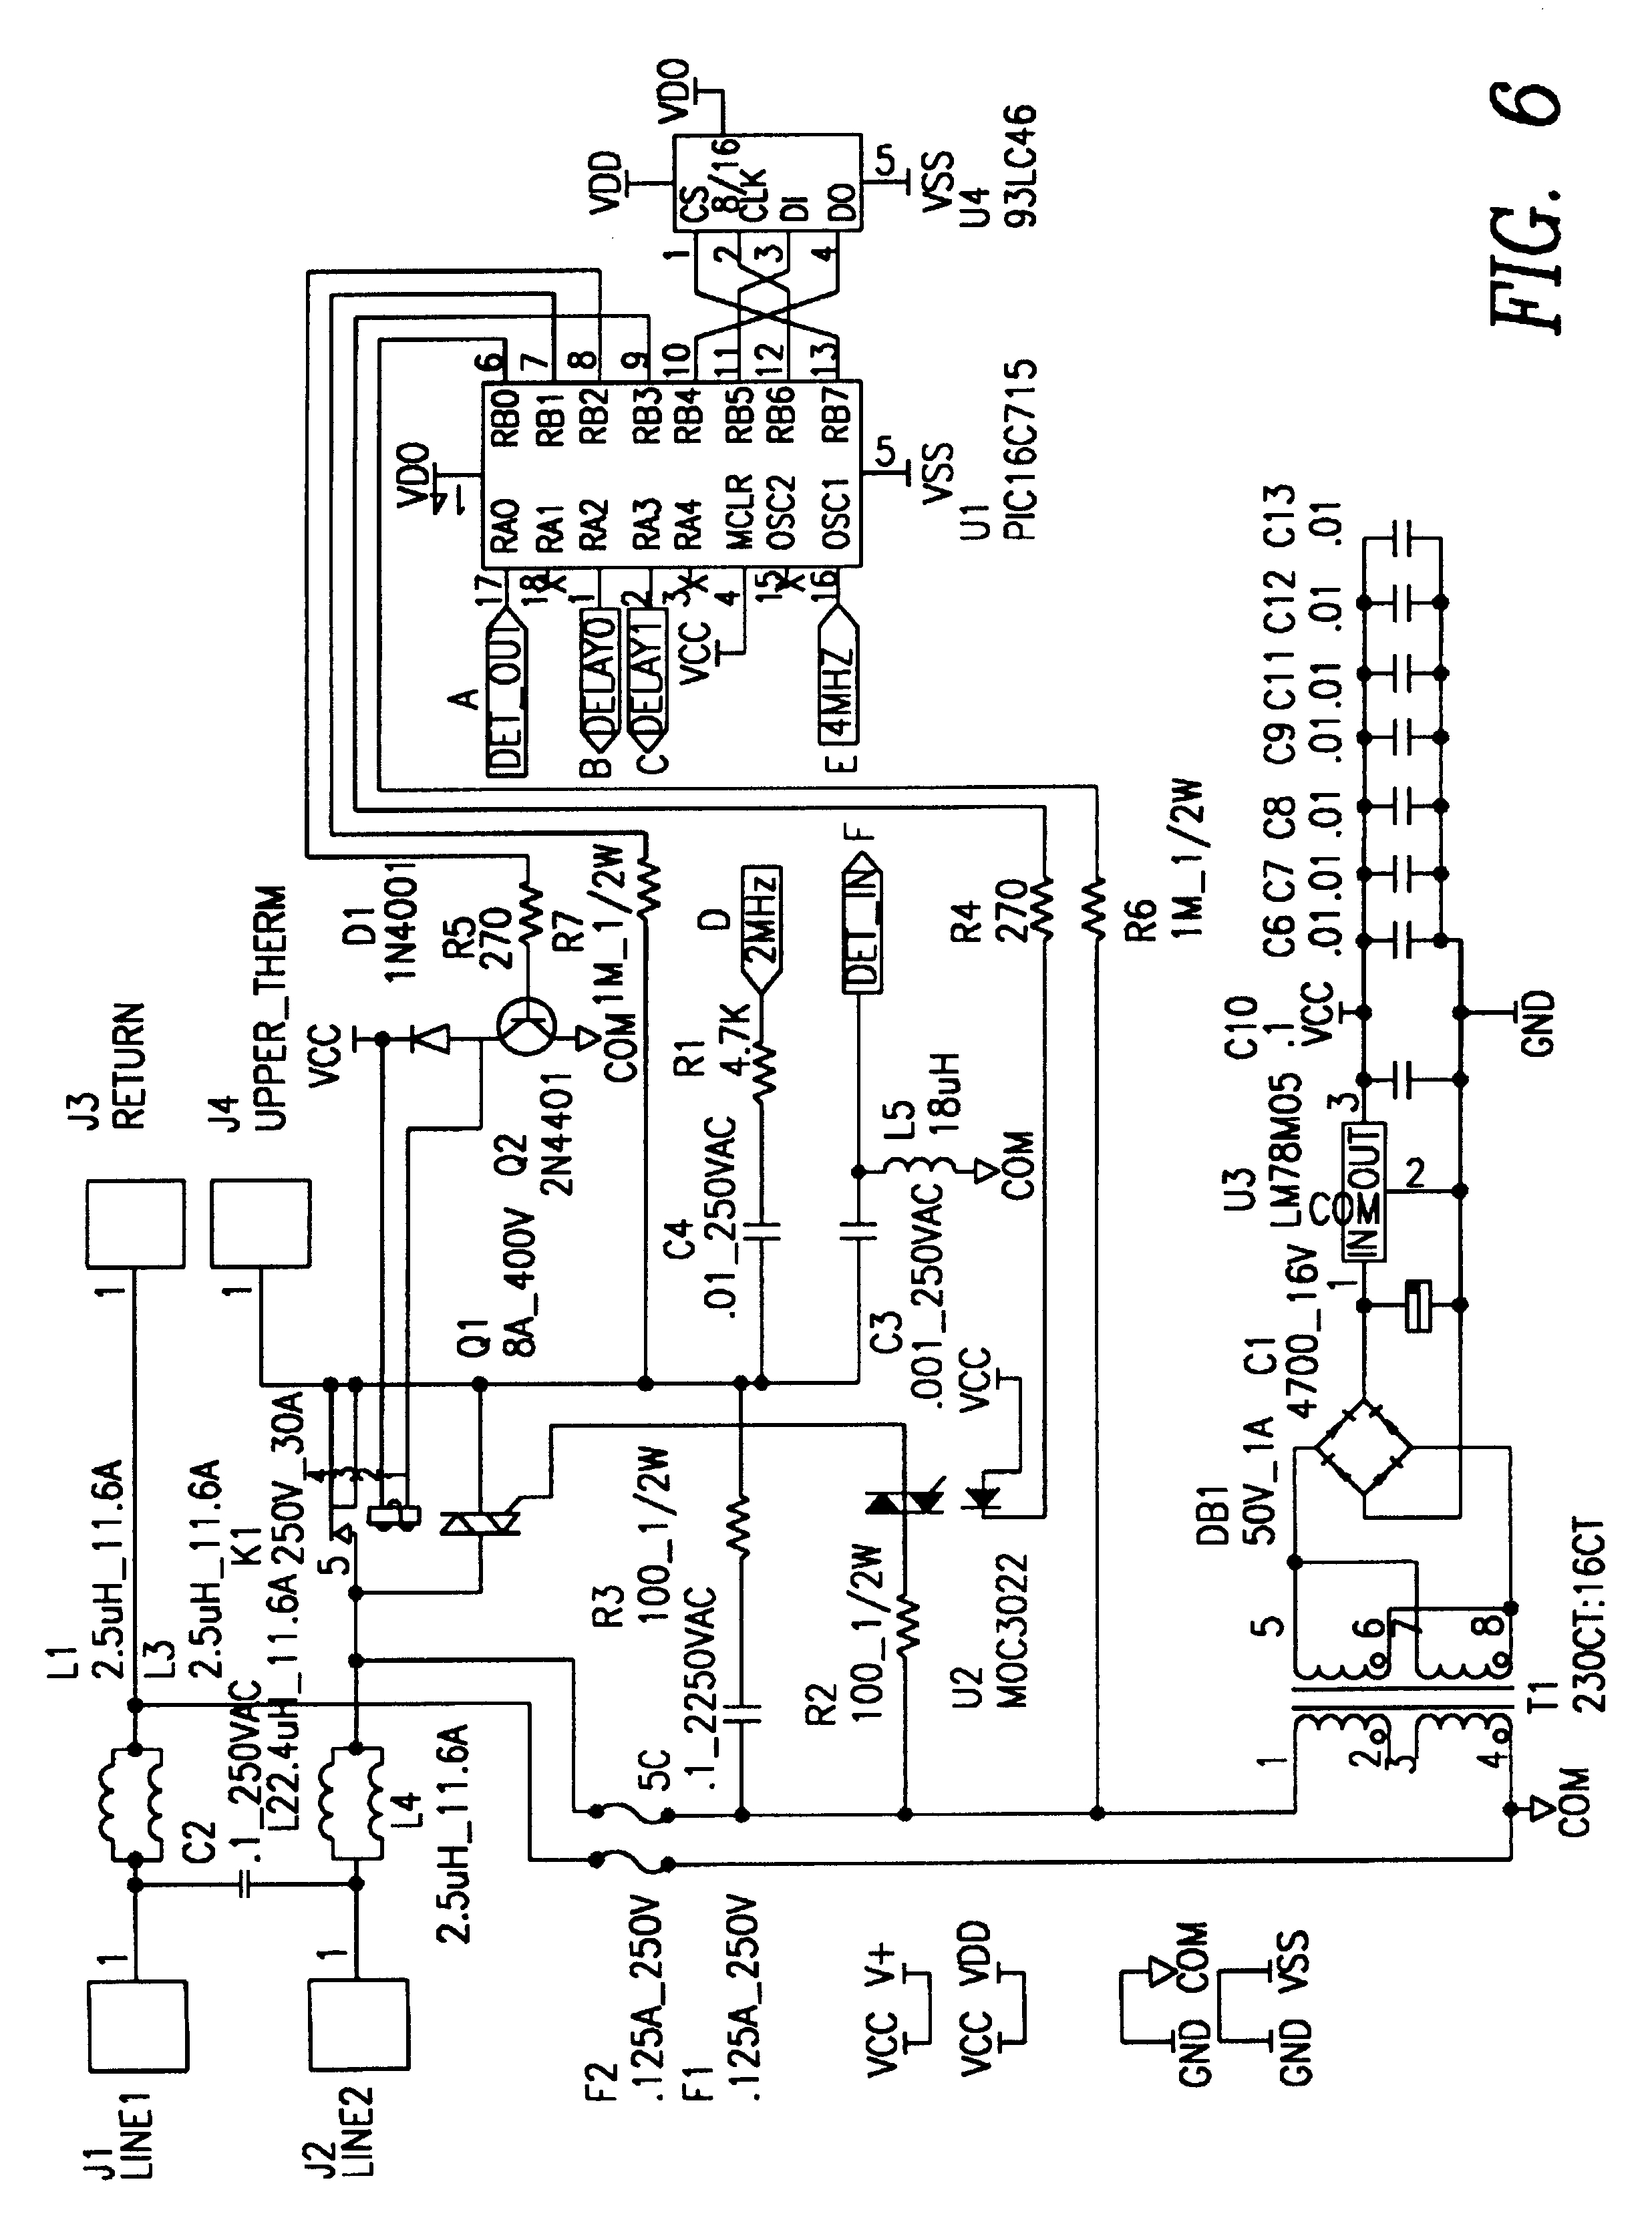 hatco food warmer wiring diagram Download-Hatco Booster Heater Wiring Diagram Auto Electrical Wiring Diagram • 35 Awesome Hatco Heat Lamp 13-g